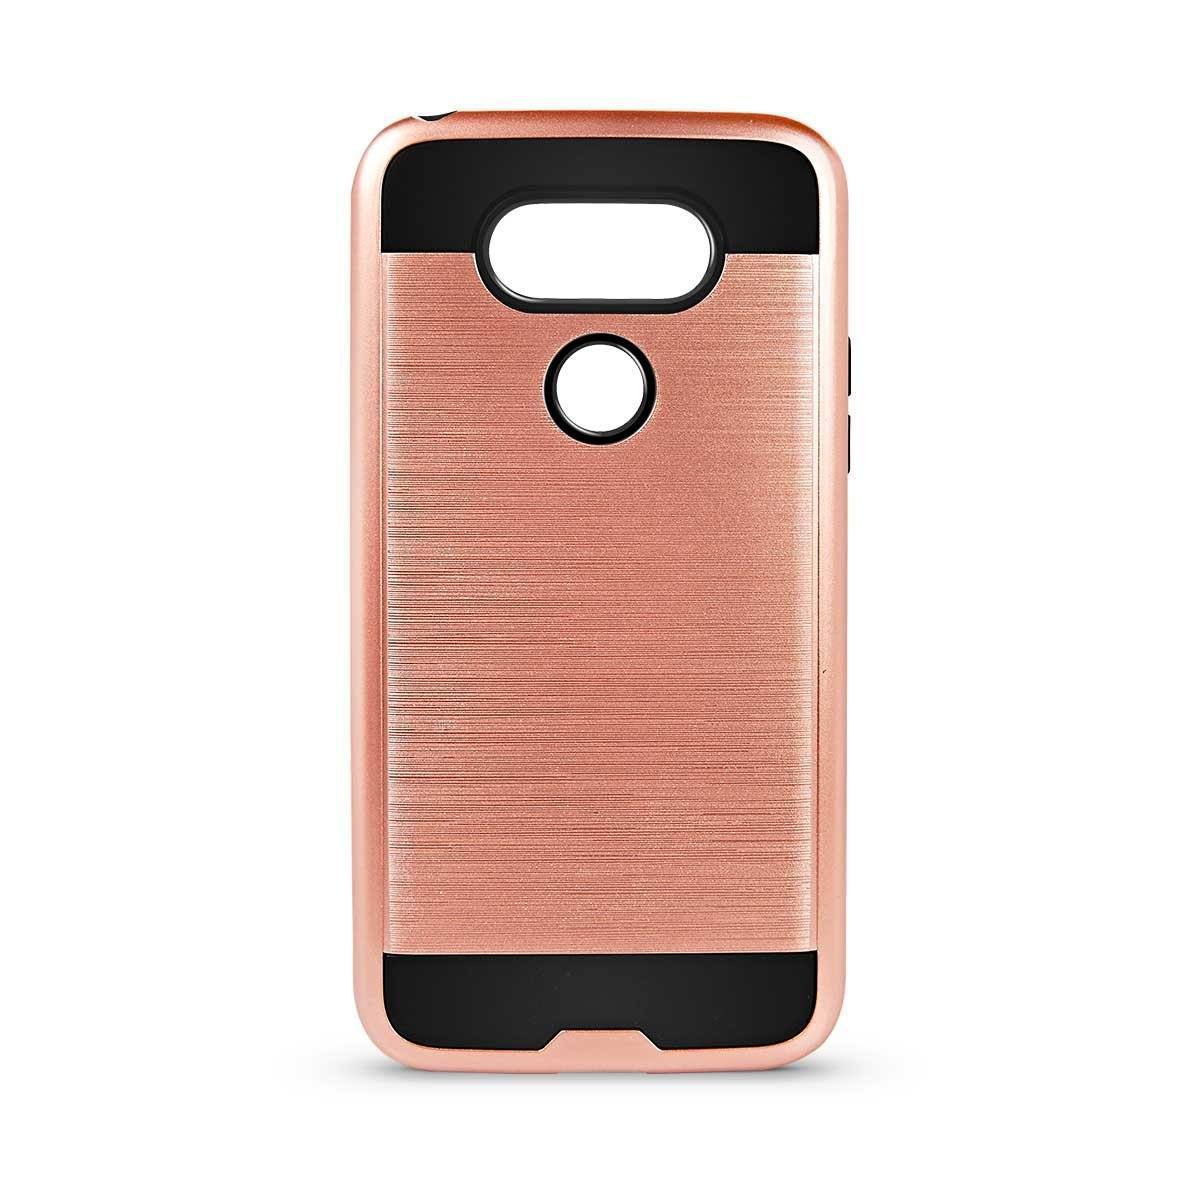 MD Hard Case for LG G5 - Rose gold